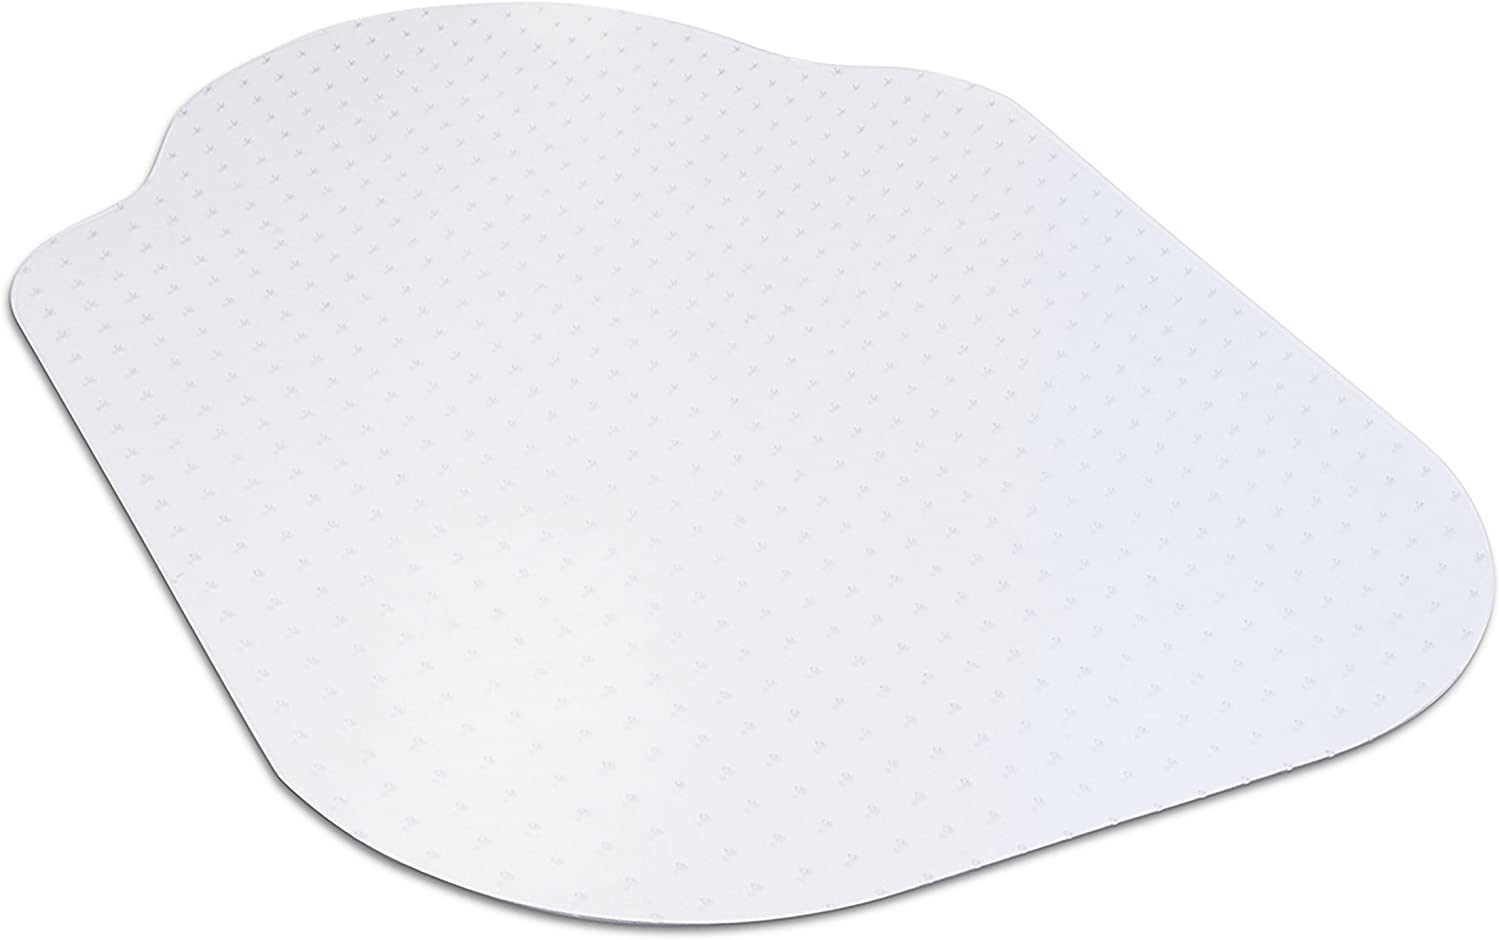 """Evolve Modern Shape 33"""" x 44"""" Clear Office Chair Mat with Lip for Low Pile Carpet, Made in The USA by Dimex, (C5B5003G) : Office Products"""